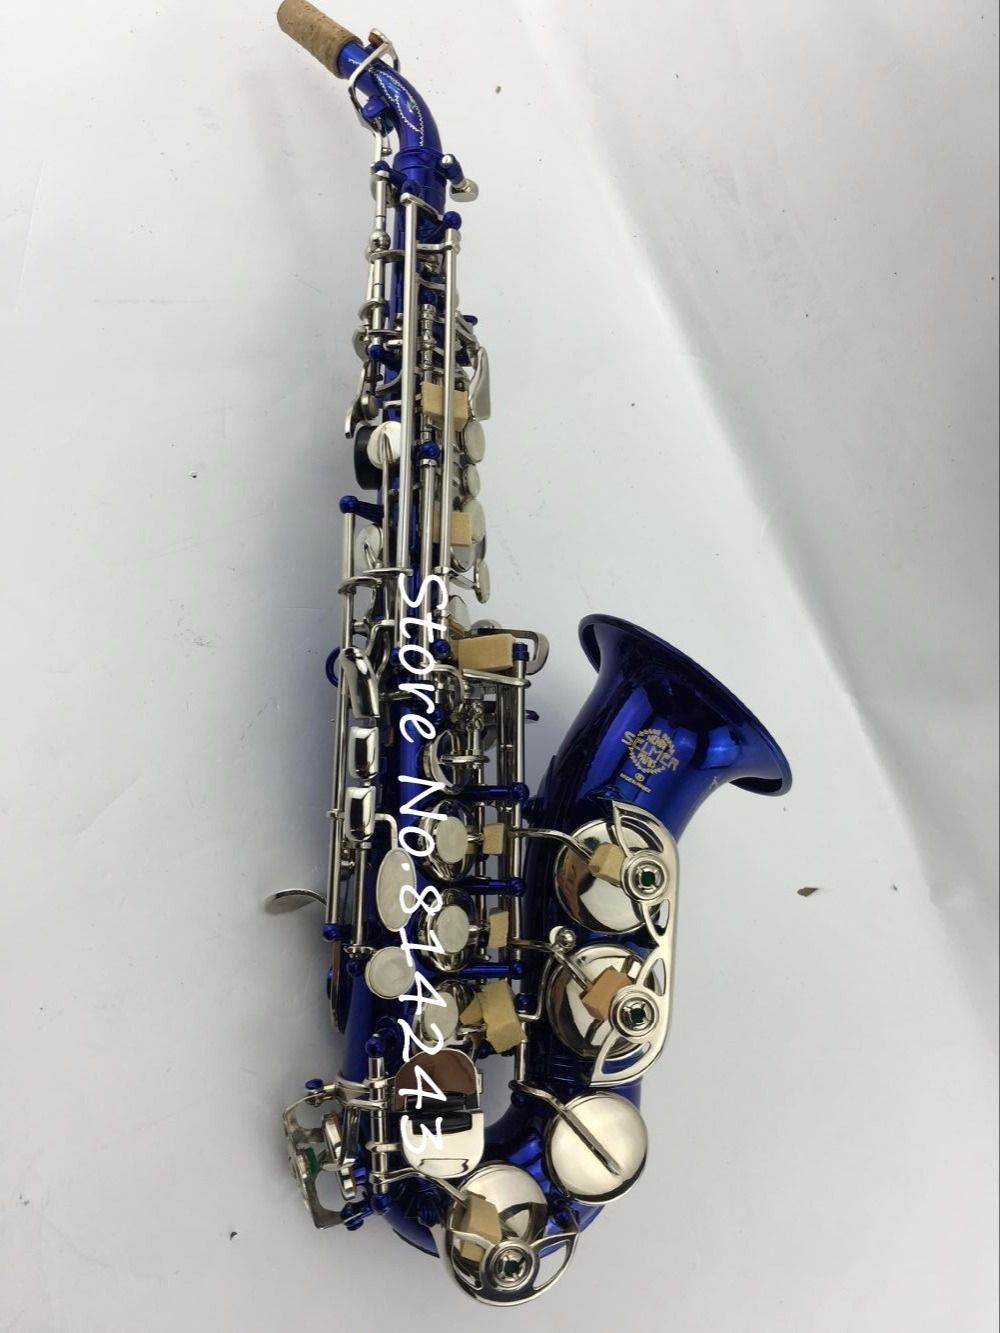 Selmer 54 Small Bend Bb Soprano Saxophone B Flat Klotz Pro Artist 6 Meter High Quality Instrument Cable Kabel Gitar Made In German Reference Blue Body Golden Key Sax Professional Affiliate